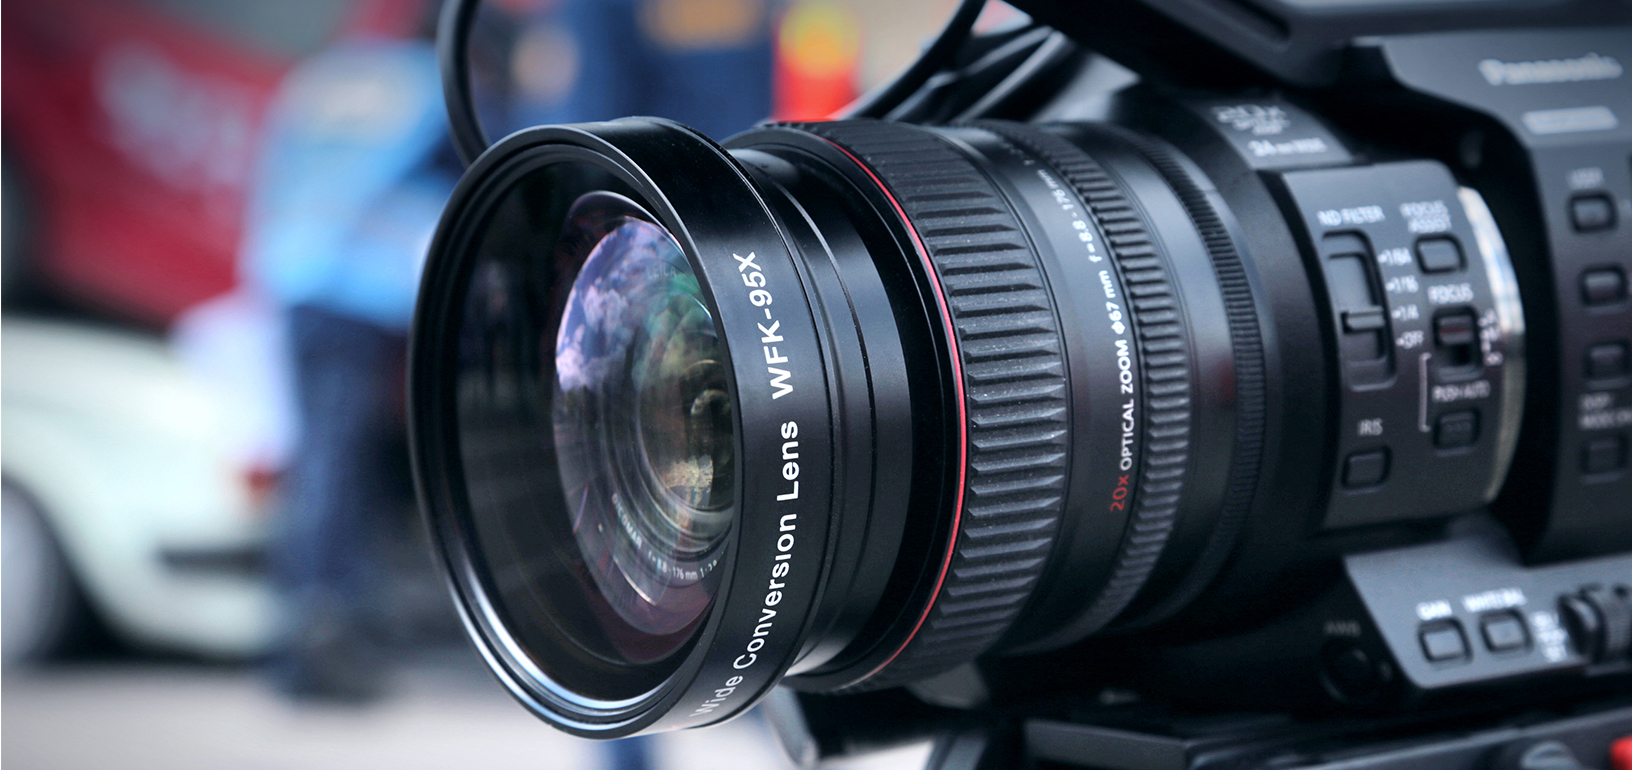 Increasing demand for high quality conversion lenses